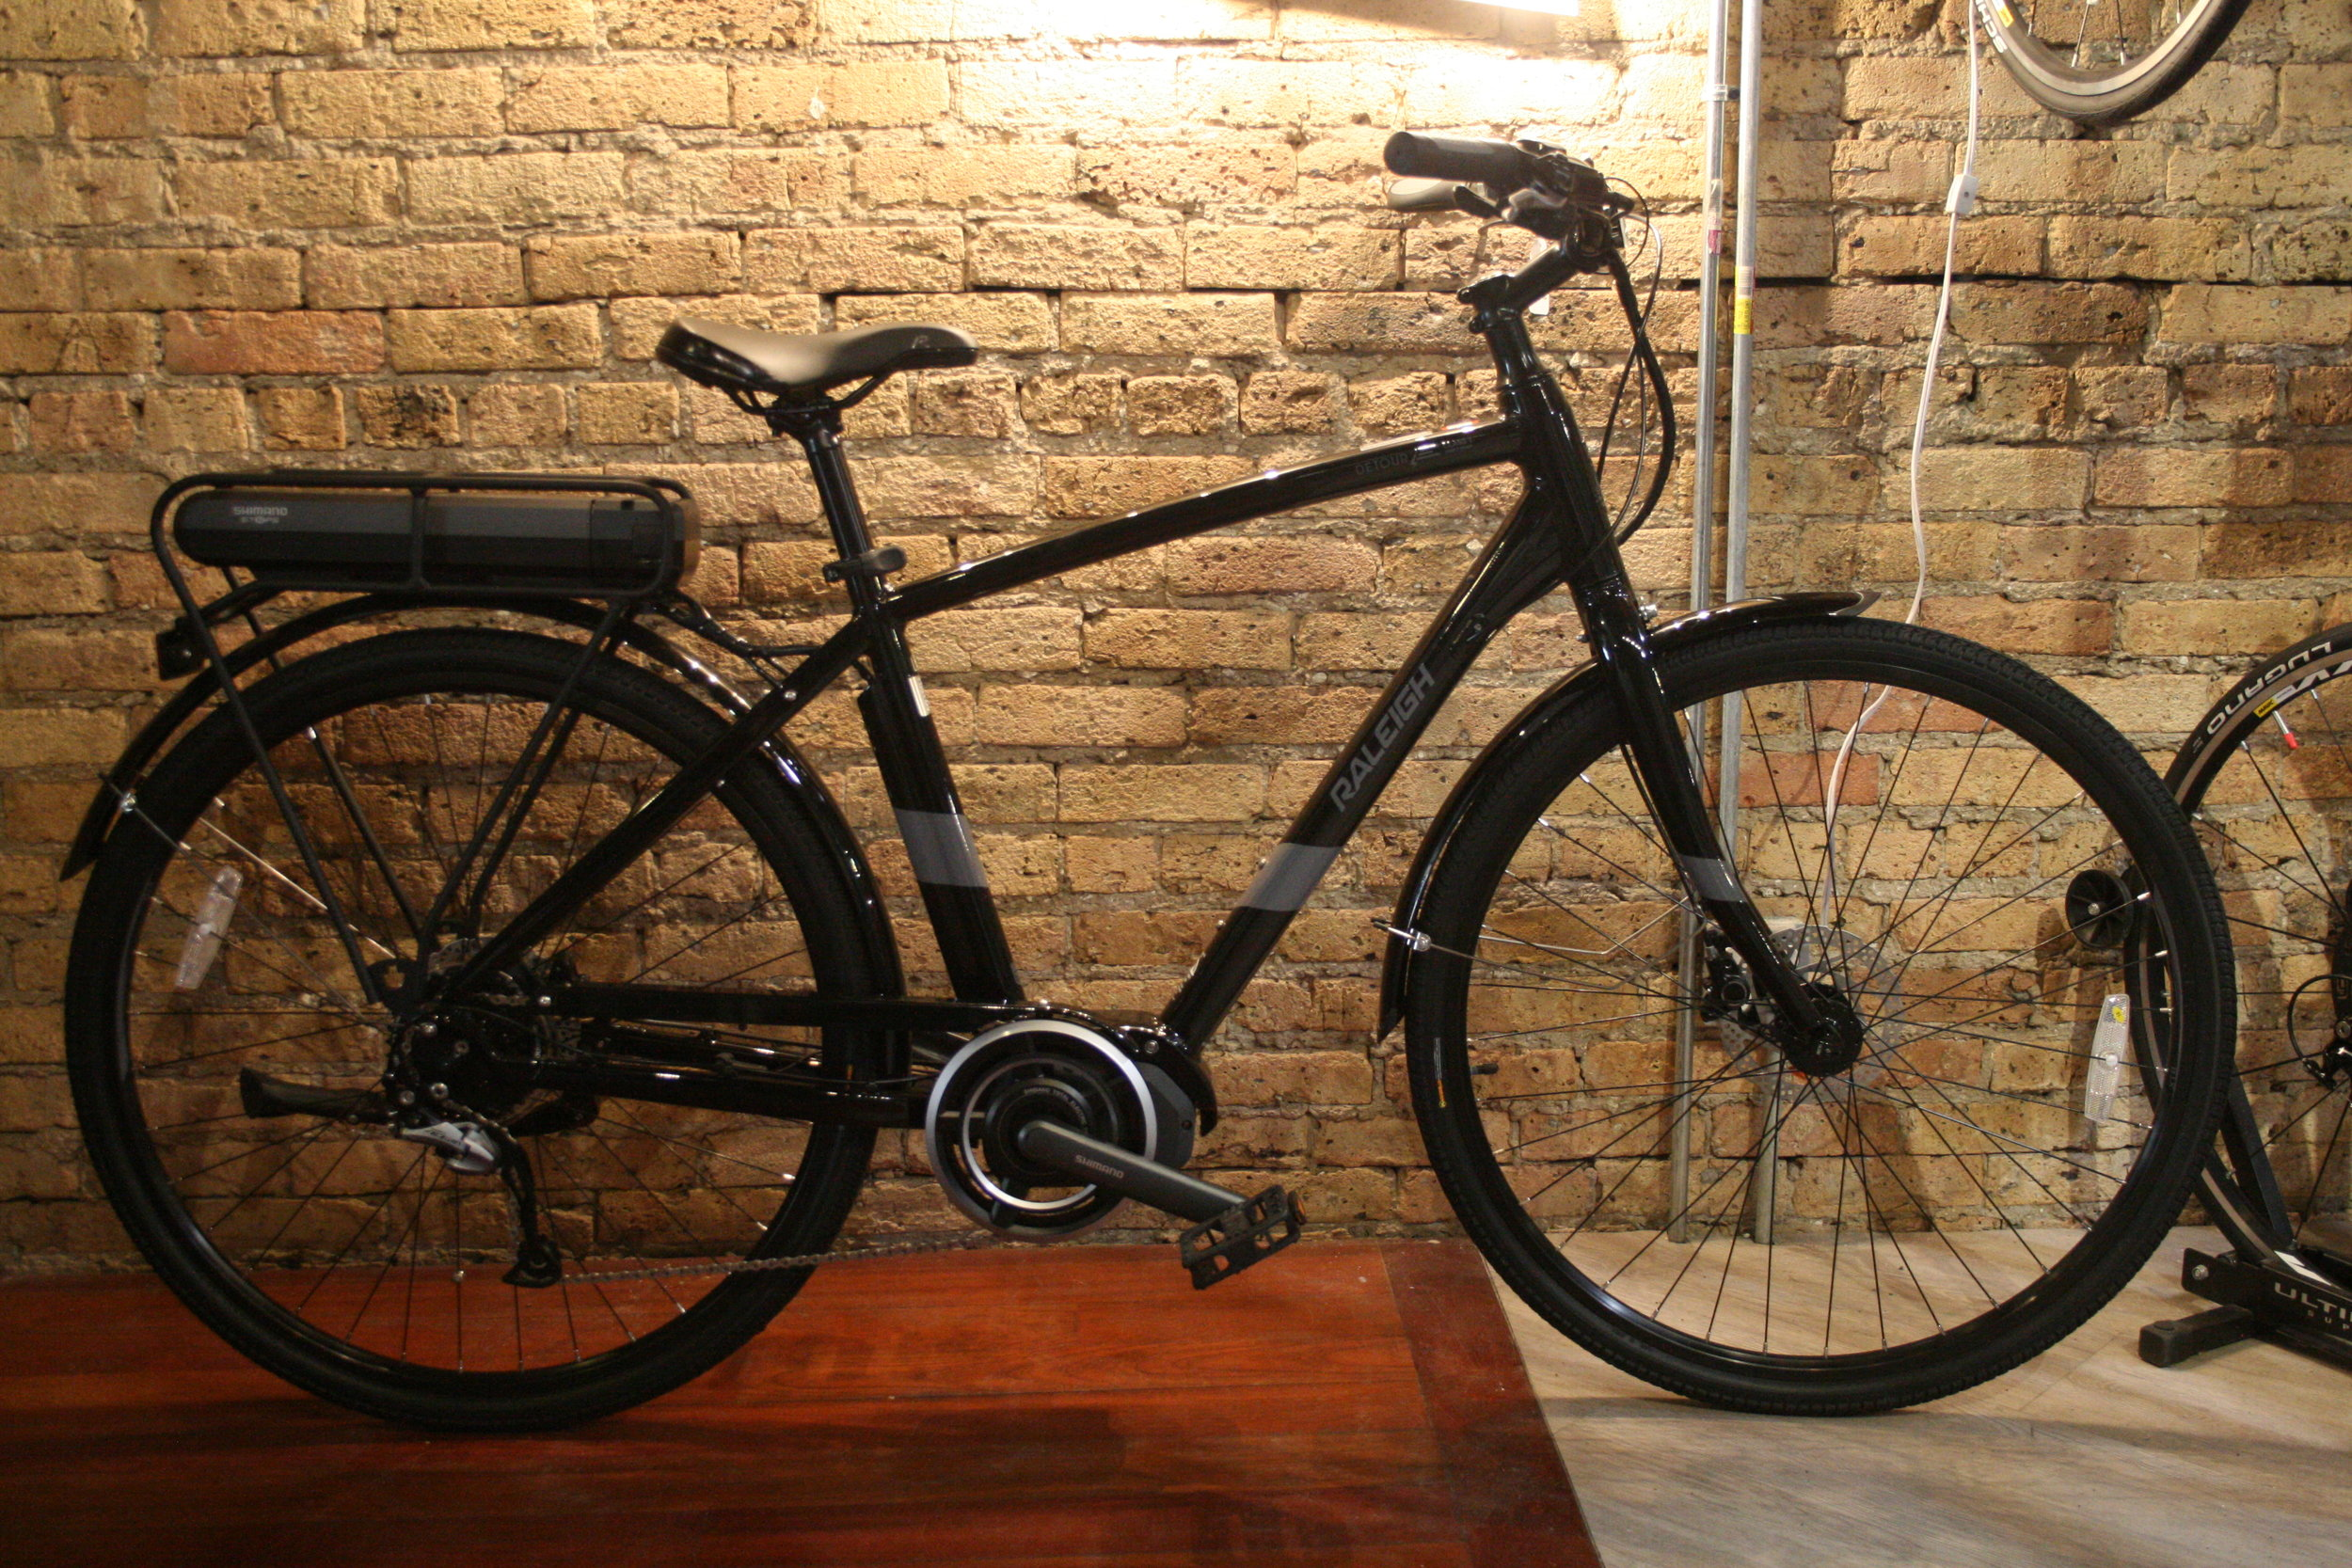 **CLOSEOUT LAST CALL** RALEIGH Detour IE - WAS $2625 NOW $1799.99